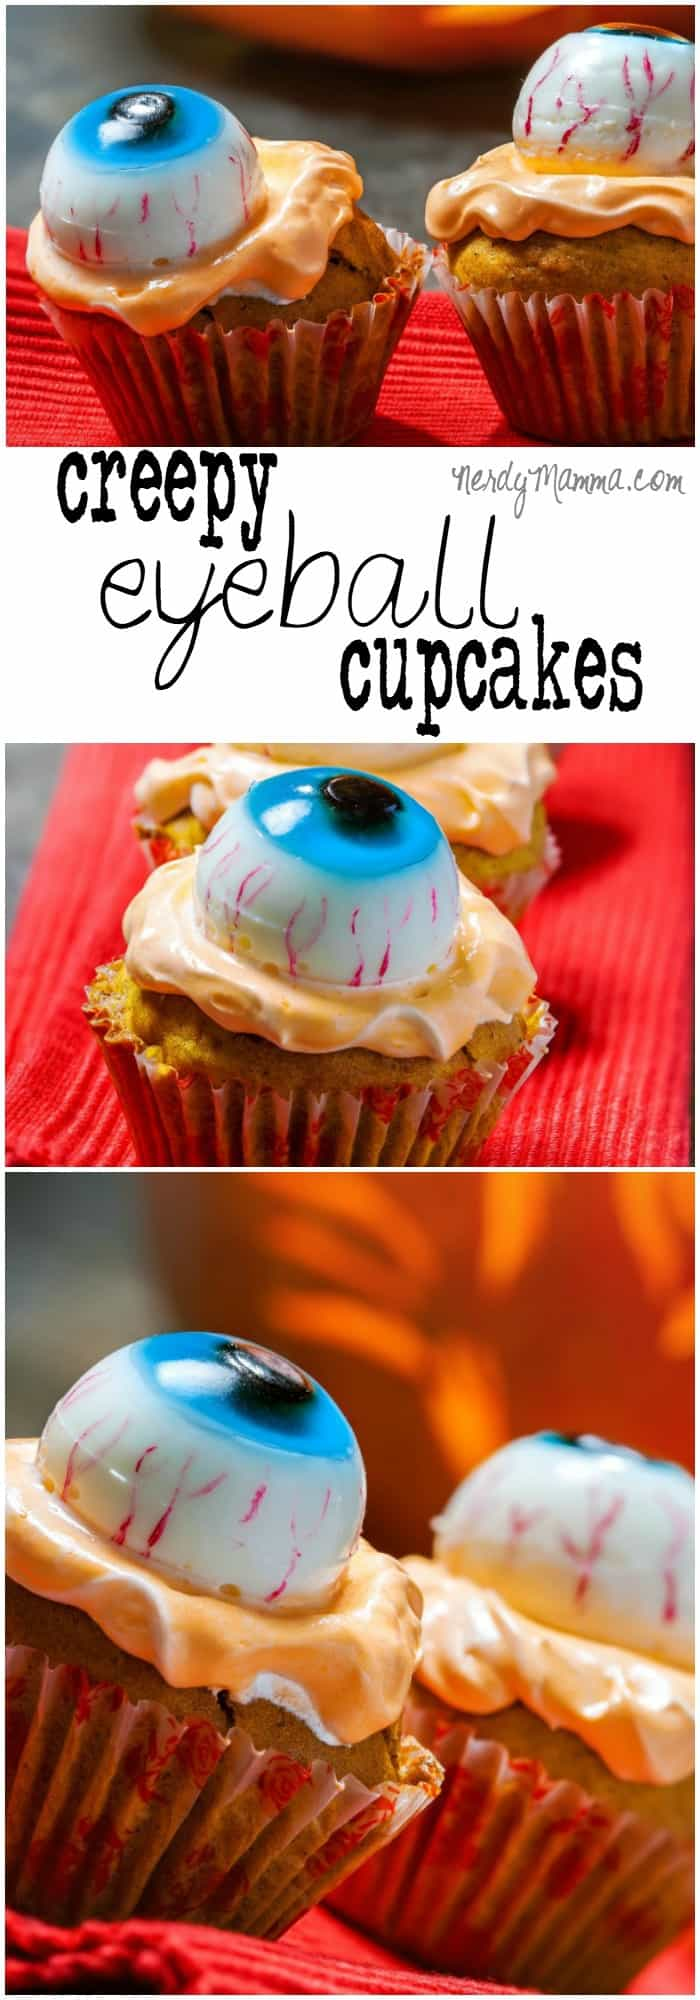 These easy eyeball cupcakes are egg-free and dairy-free...and fast. They make for an awesome Halloween school party snack!